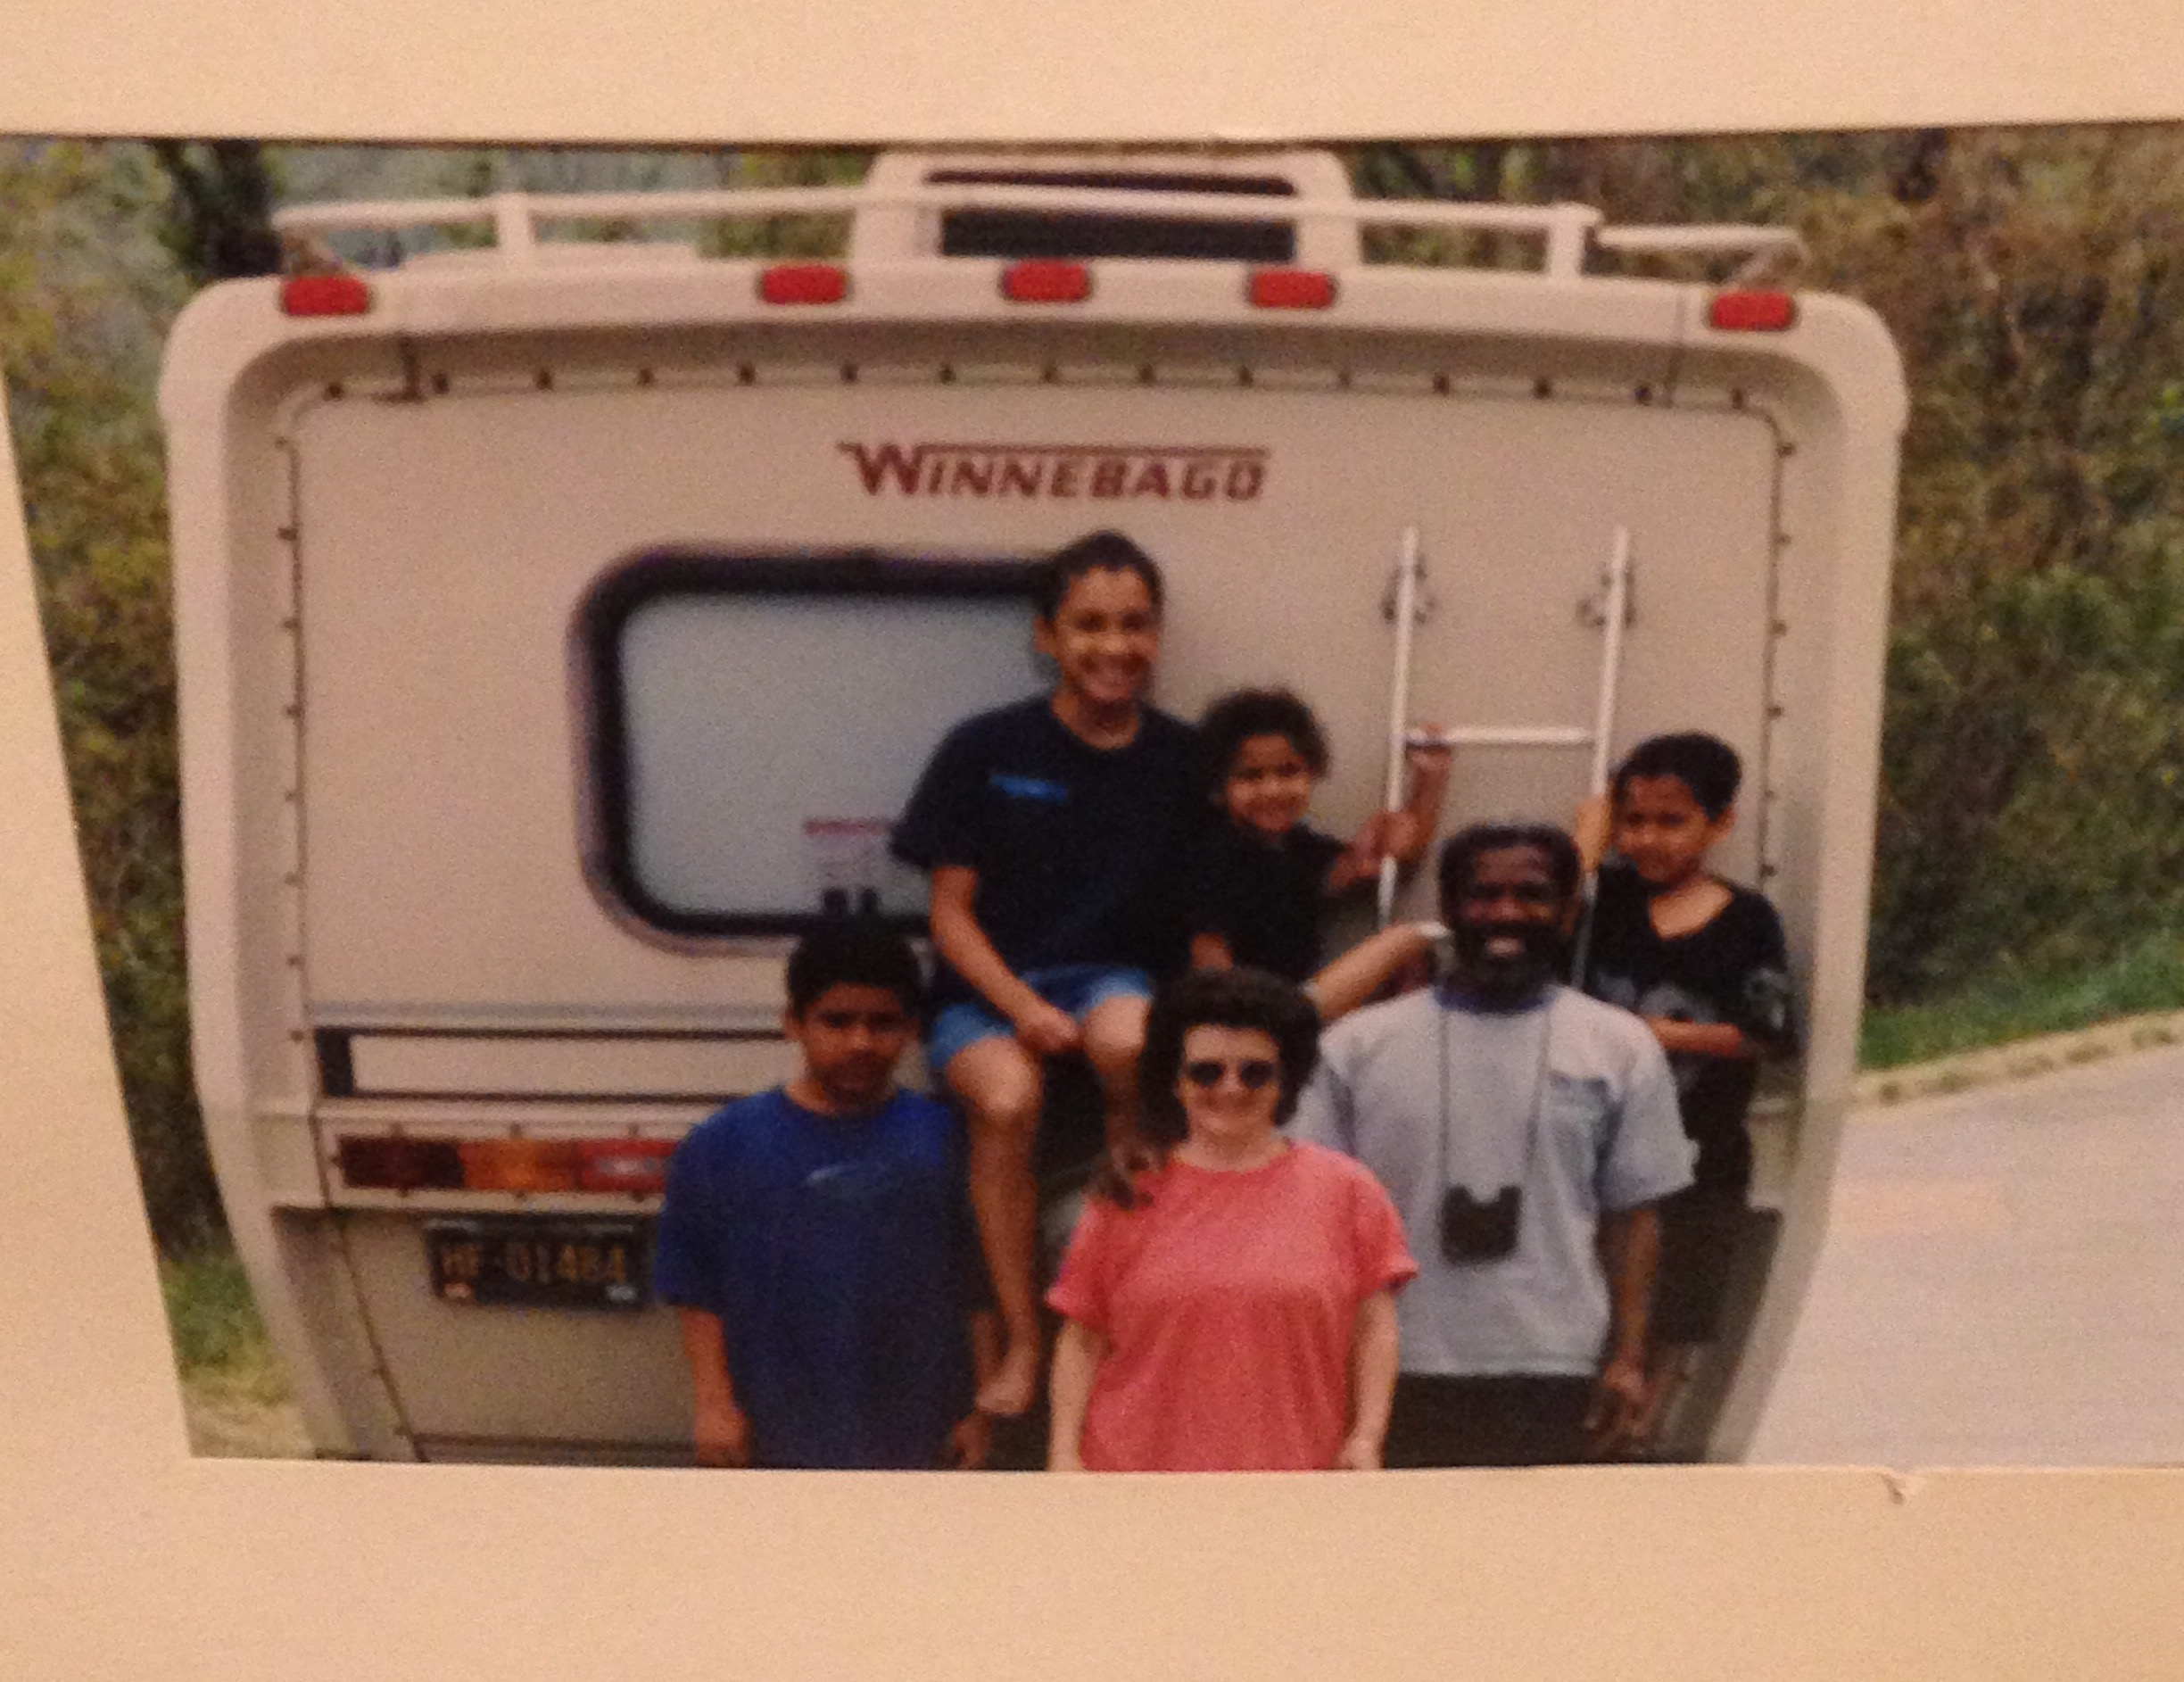 The author and her family stands by their van.